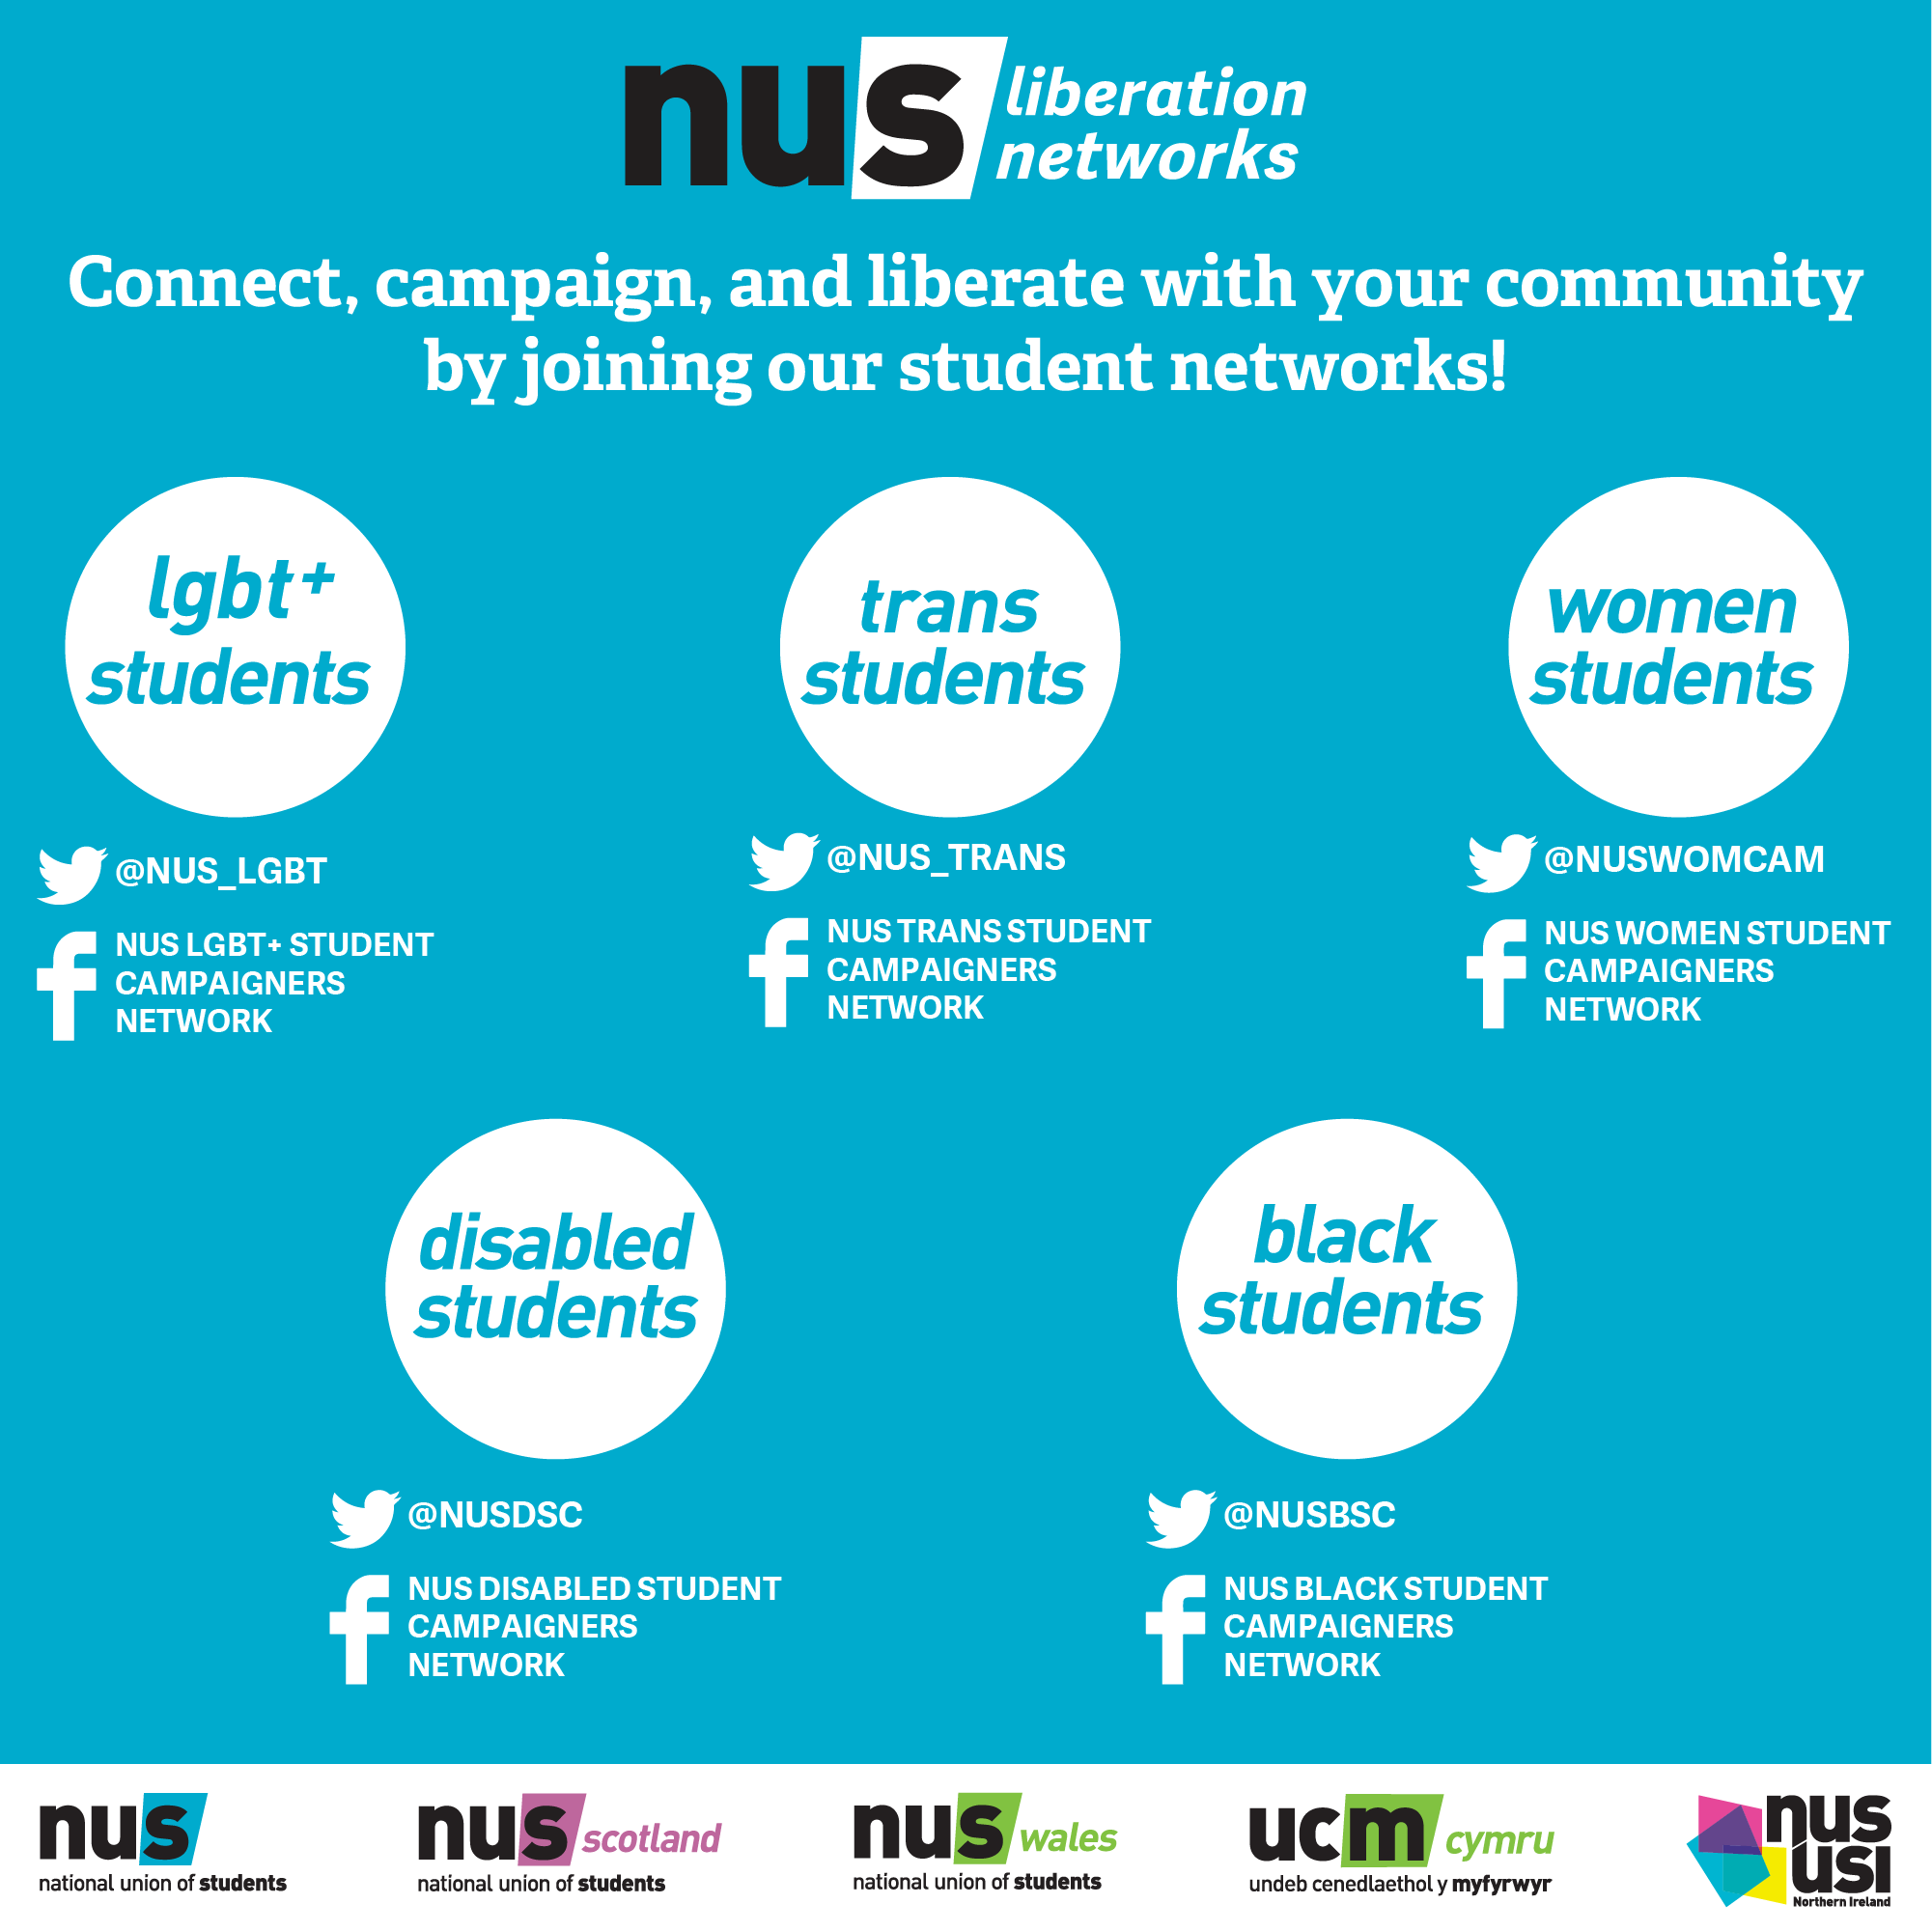 Connect, campaign and liberation with your community by joining our student networks!